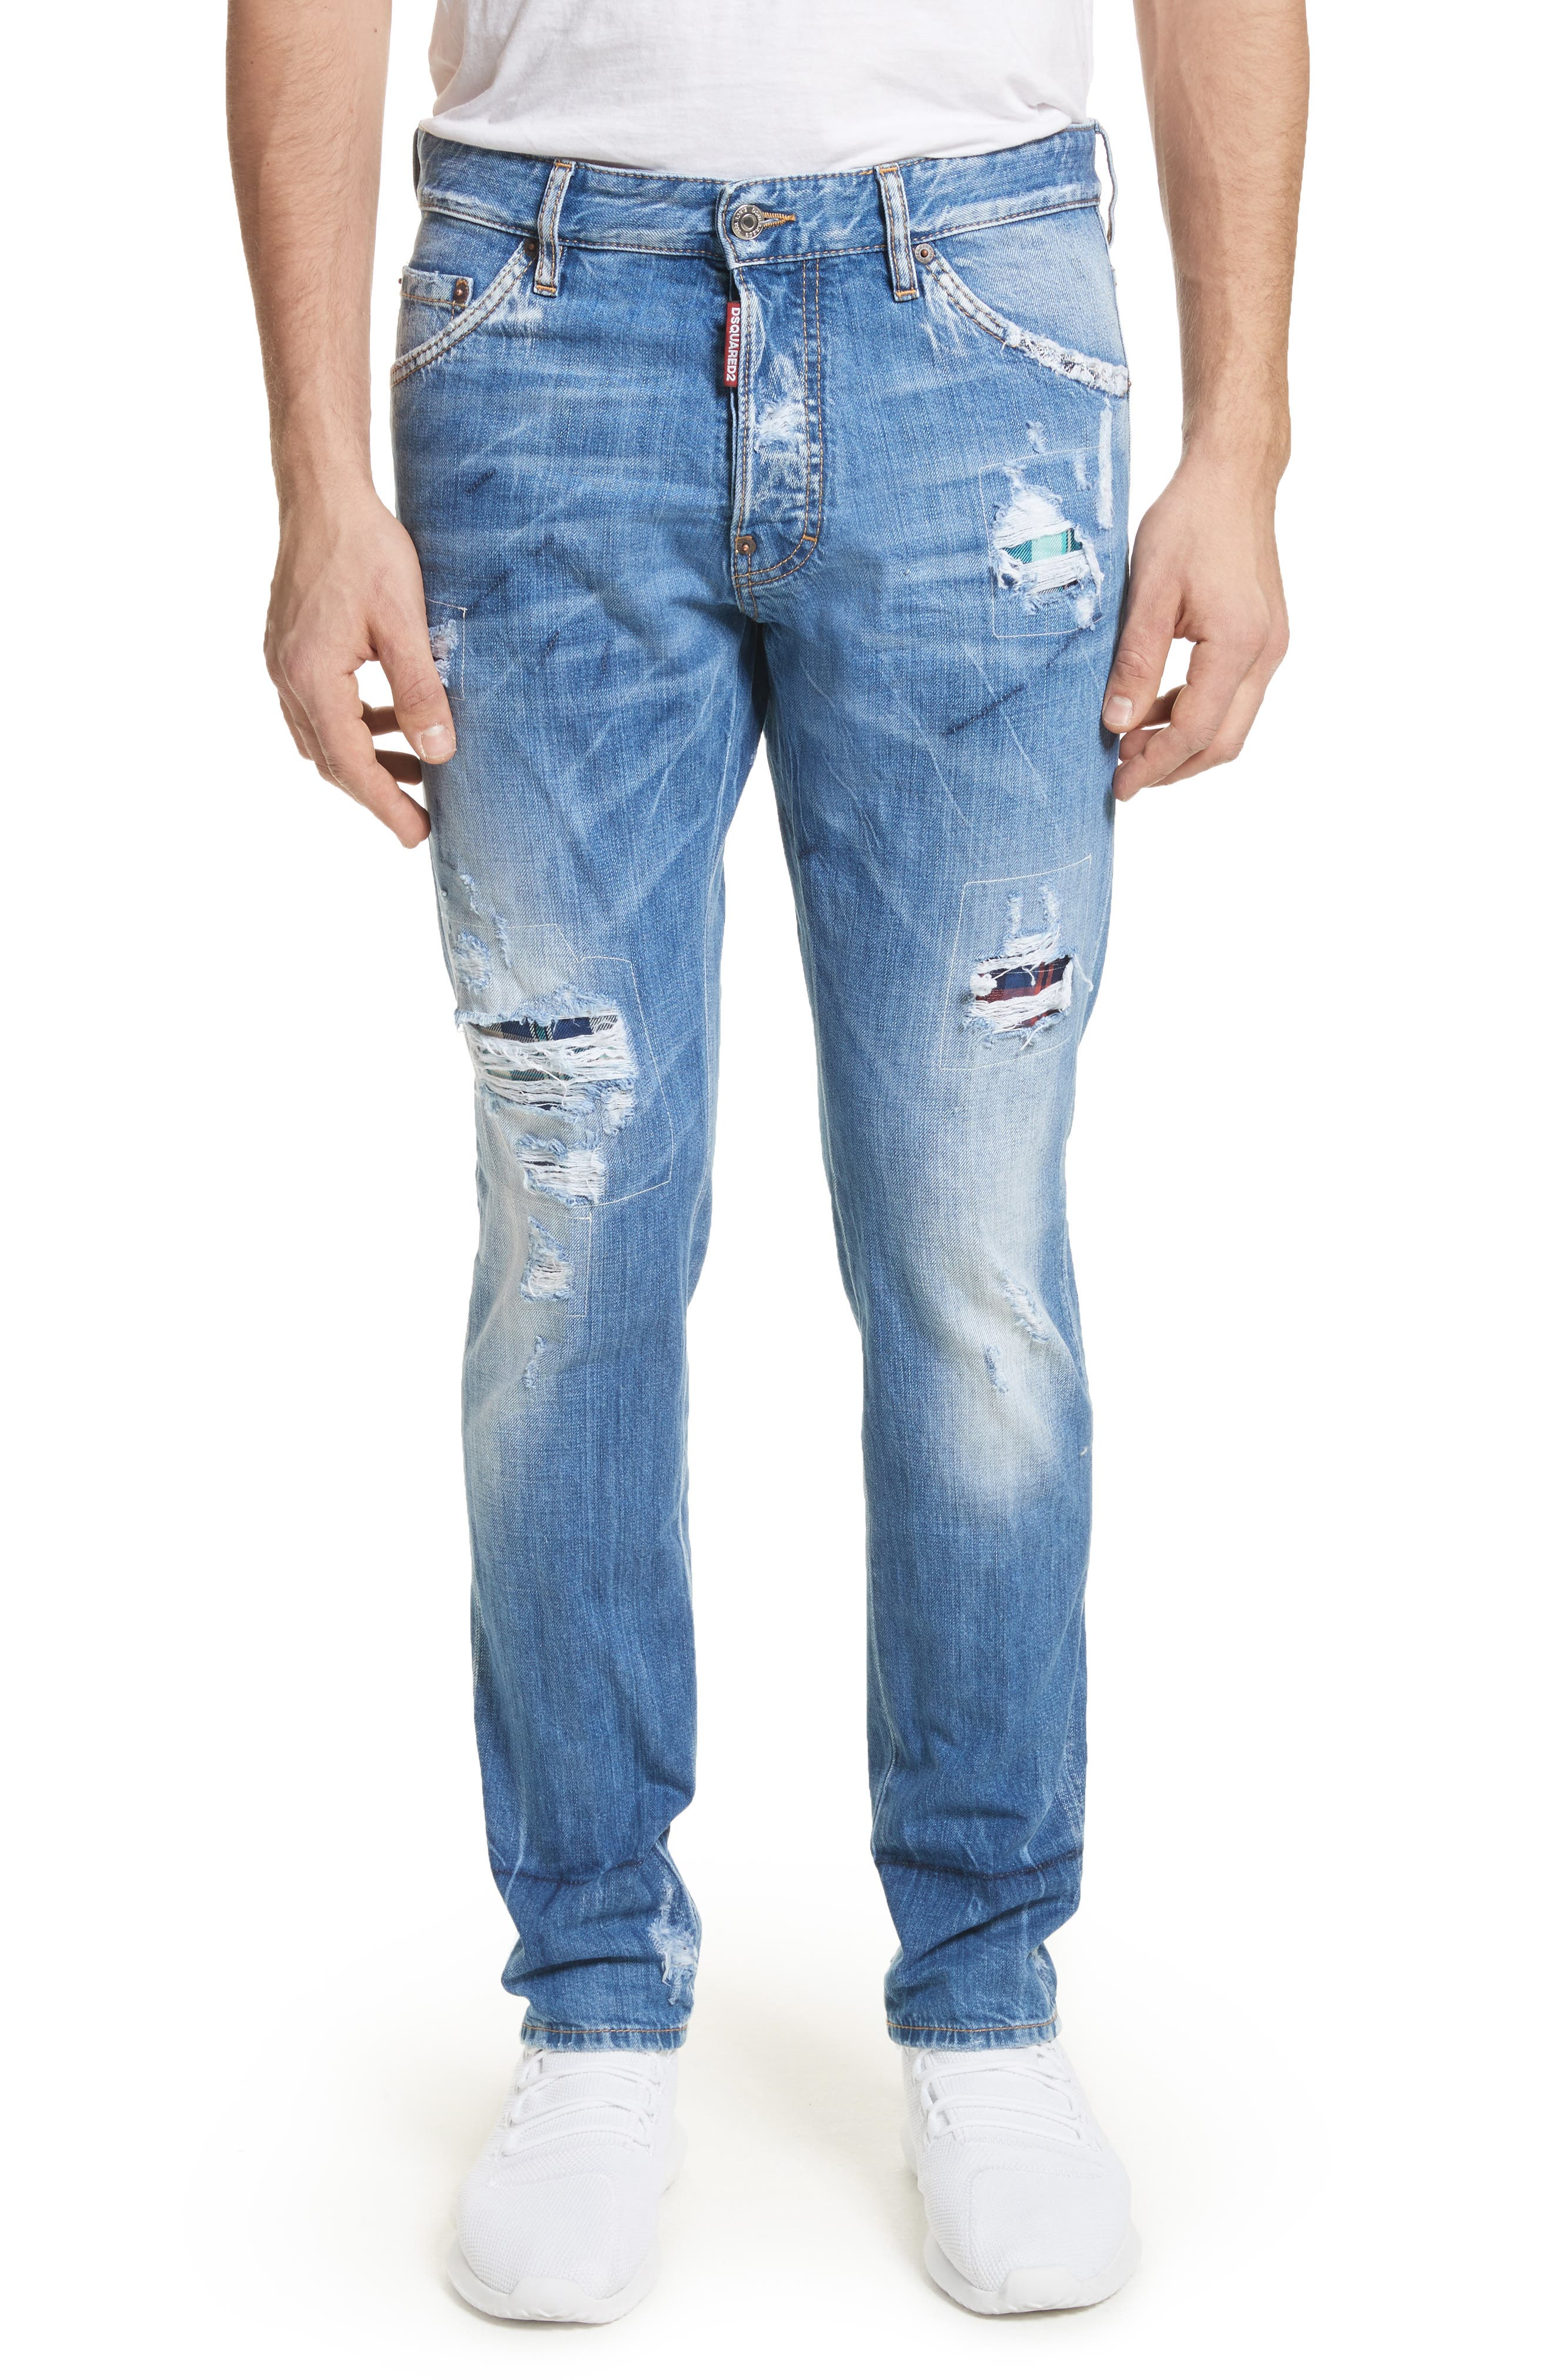 Cool Guy Skinny Fit Jeans,                             Main thumbnail 1, color,                             Navy/Blue